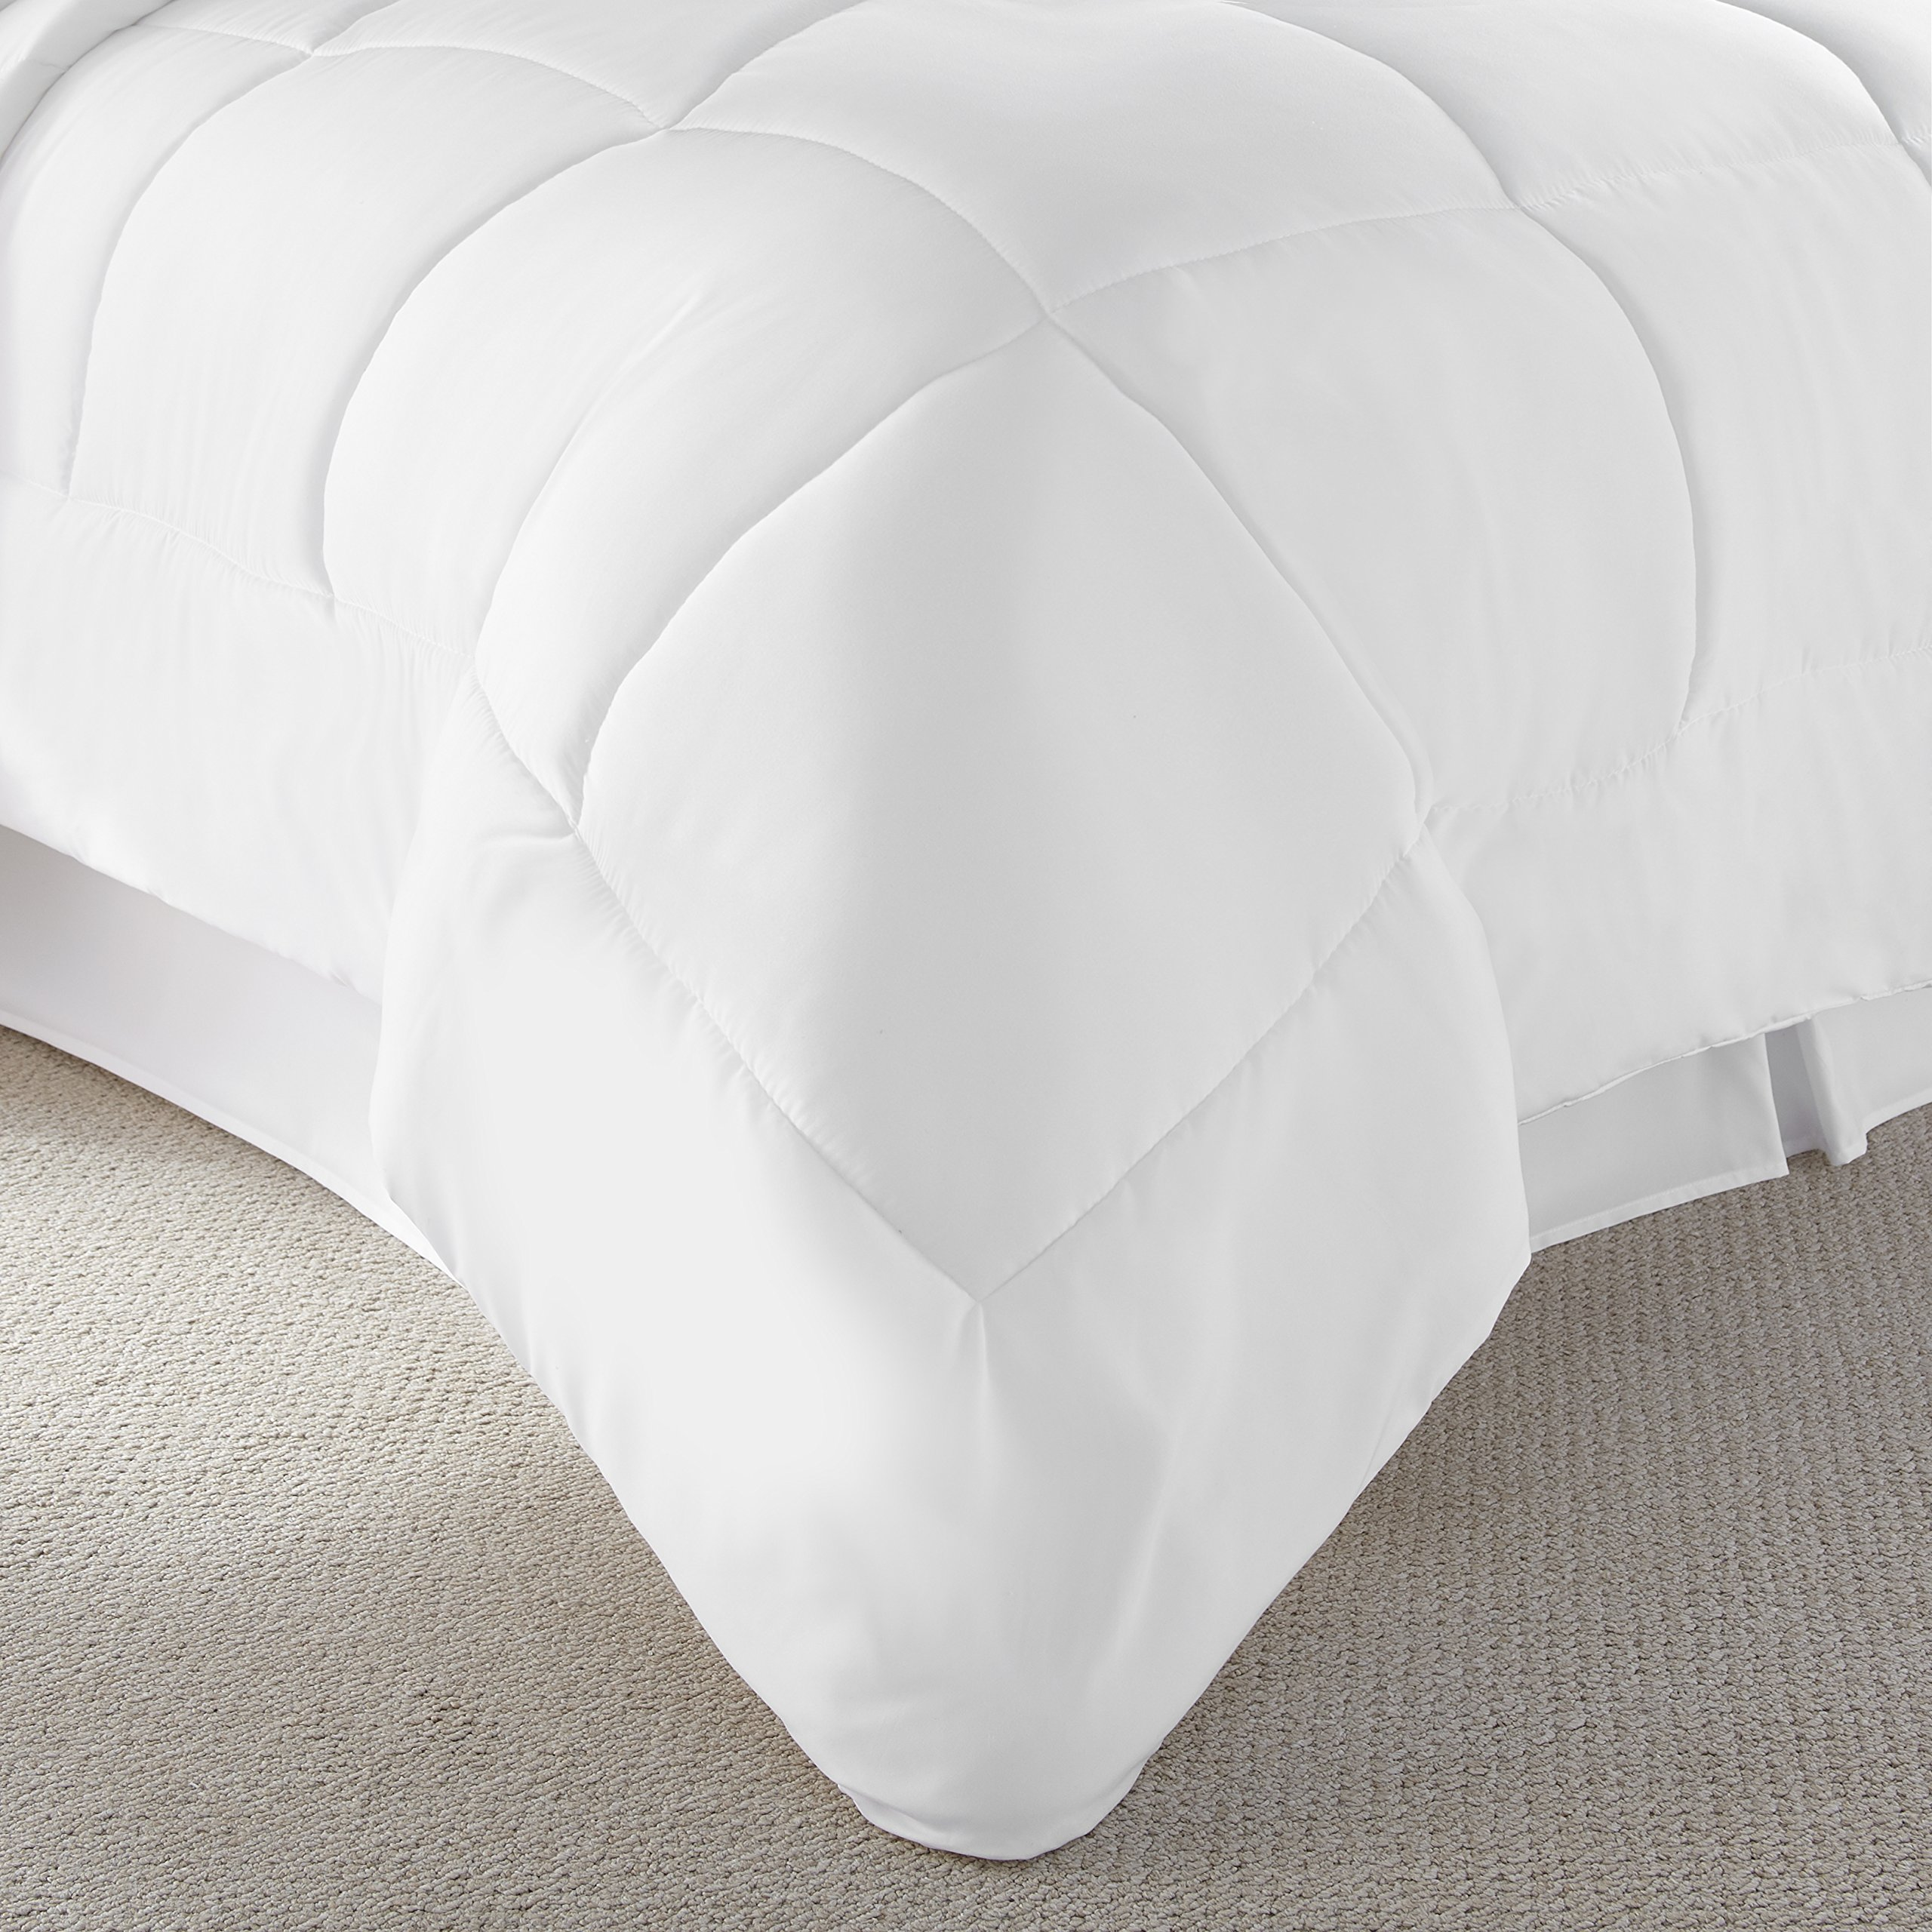 Danjor Linens Luxury Soft All Season White Down Alternative Comforter- Hypoallergenic, Box Stitched- Plush Microfiber fill, Machine Washable, Duvet Insert Queen Size by Danjor Linens (Image #2)